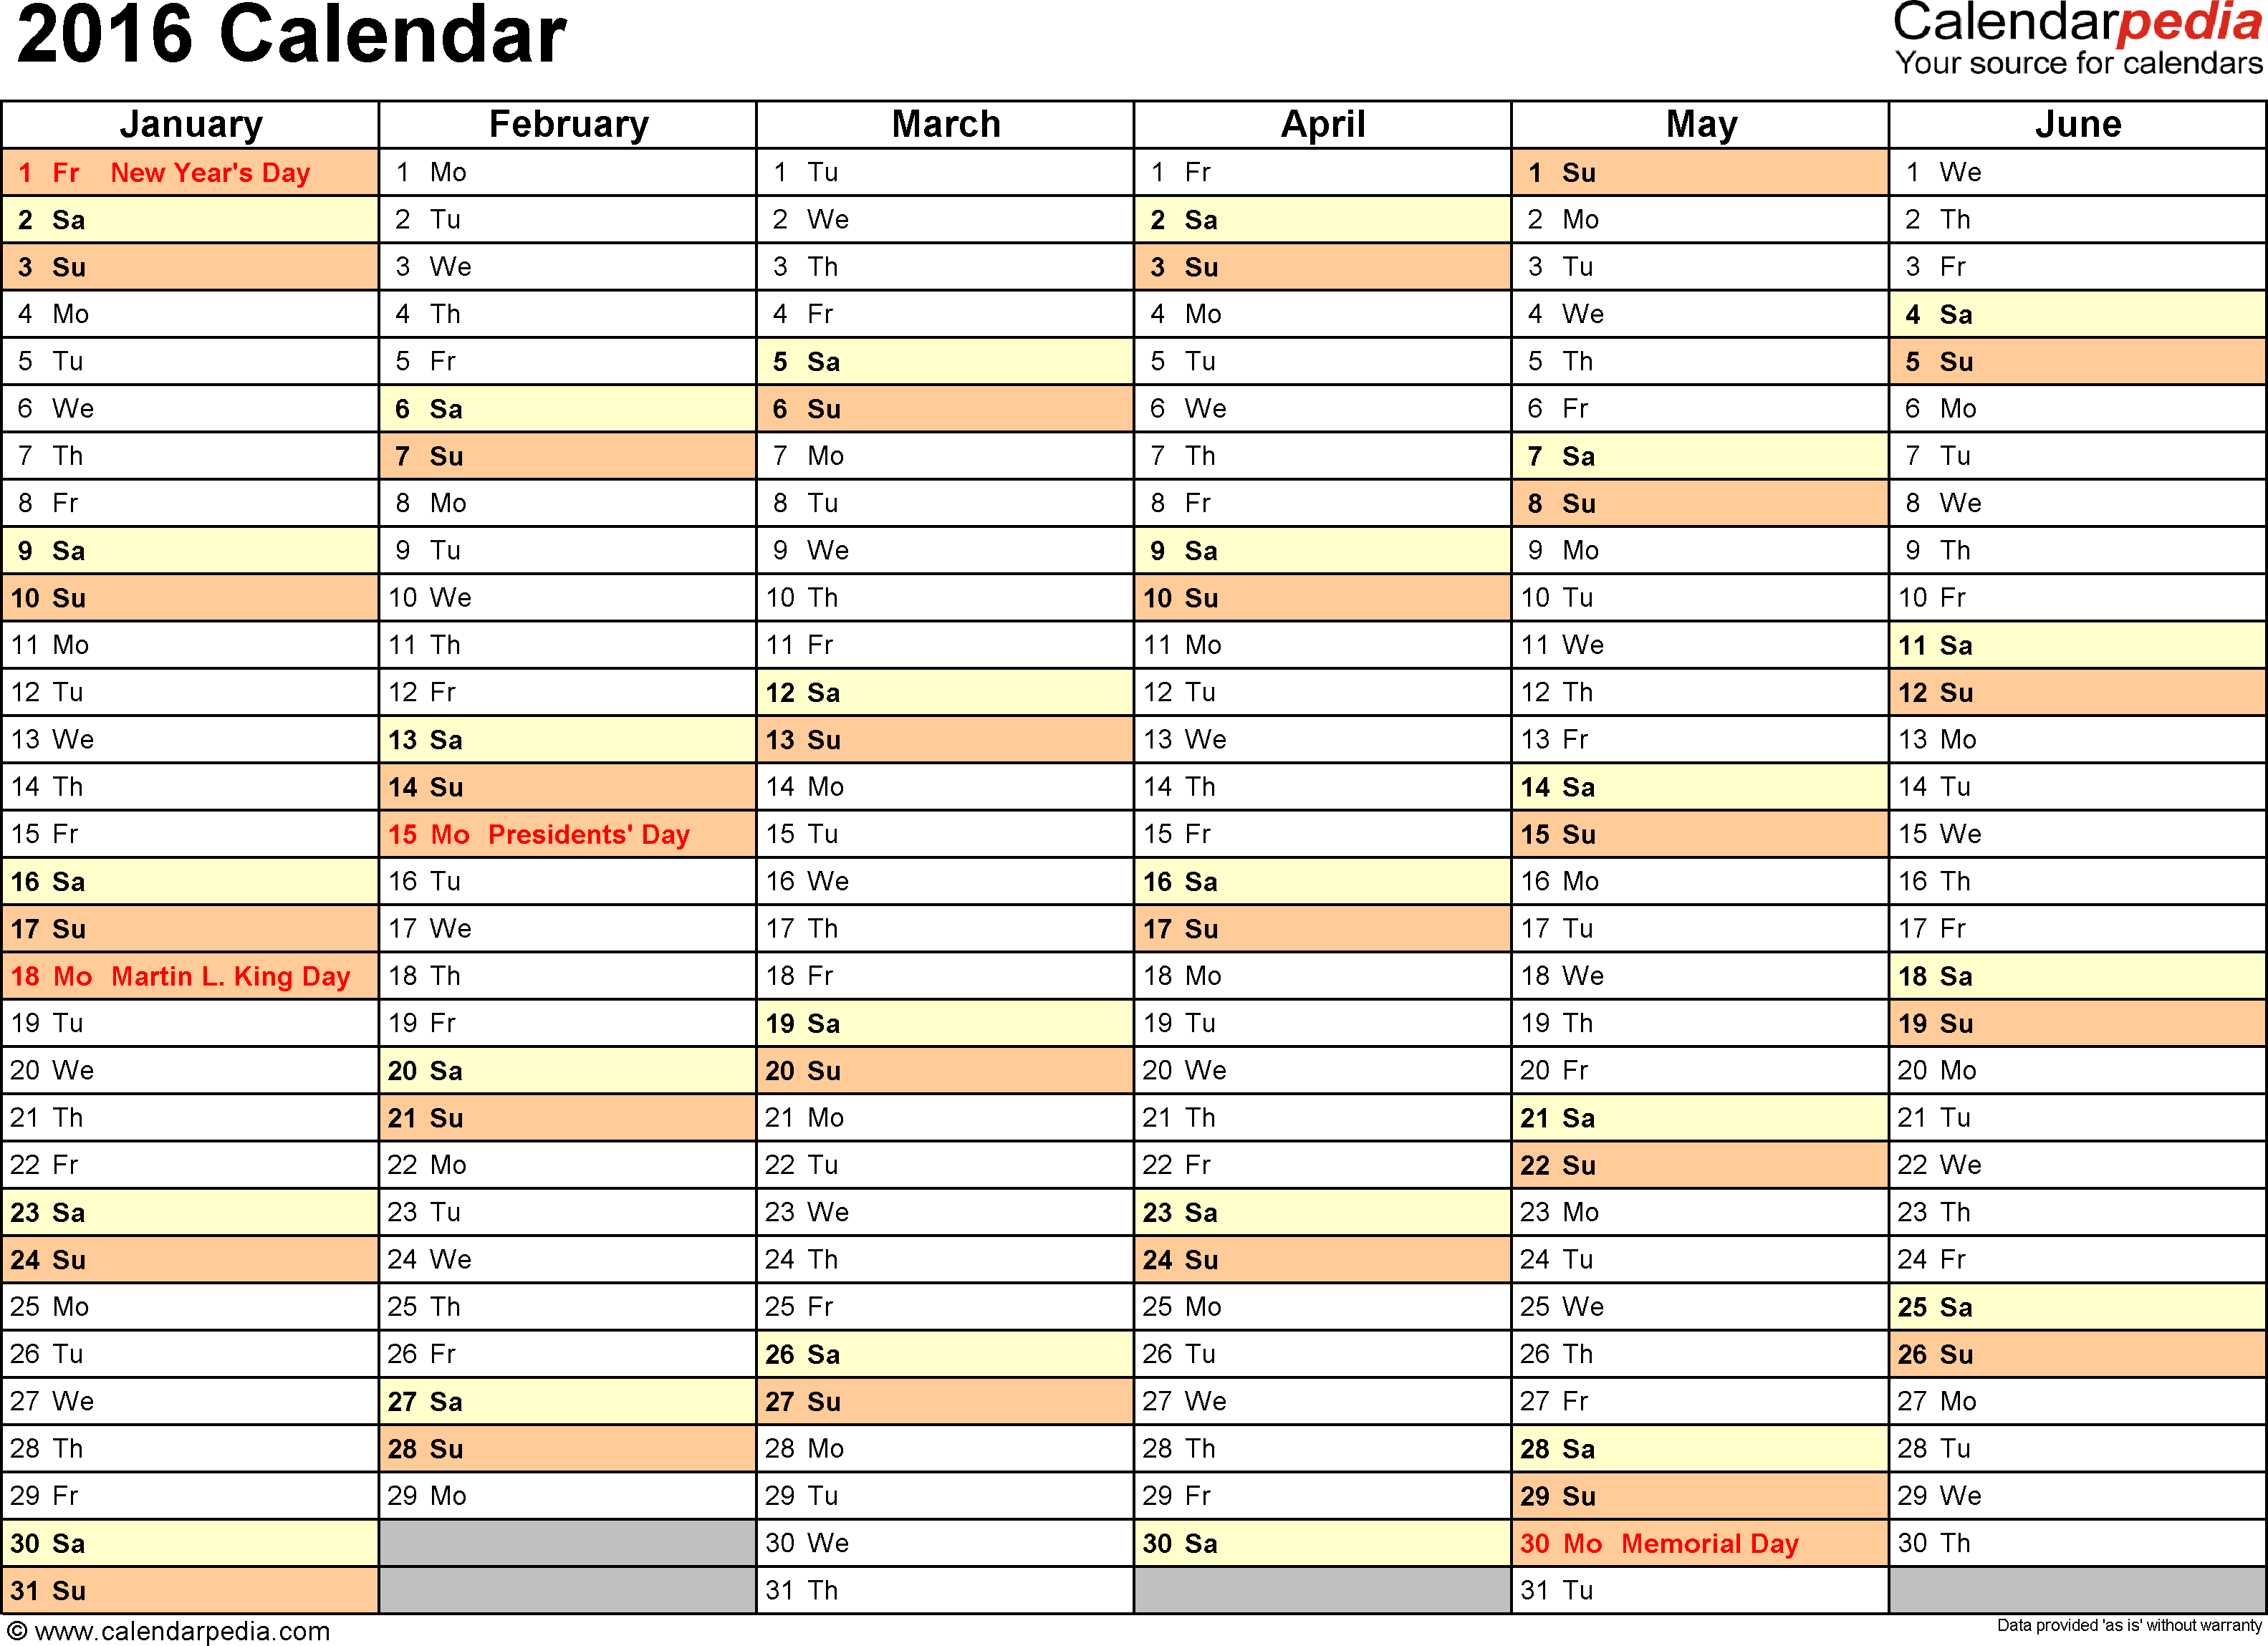 Ediblewildsus  Stunning  Calendar  Download  Free Printable Excel Templates Xls With Licious Template   Calendar For Excel Months Horizontally  Pages Landscape Orientation With Amusing Inventory Excel Spreadsheet Also Excel Sigma In Addition How To Use The Pmt Function In Excel  And Excel Find In Range As Well As Excel Unhide Command Additionally Chisqtest Excel From Calendarpediacom With Ediblewildsus  Licious  Calendar  Download  Free Printable Excel Templates Xls With Amusing Template   Calendar For Excel Months Horizontally  Pages Landscape Orientation And Stunning Inventory Excel Spreadsheet Also Excel Sigma In Addition How To Use The Pmt Function In Excel  From Calendarpediacom